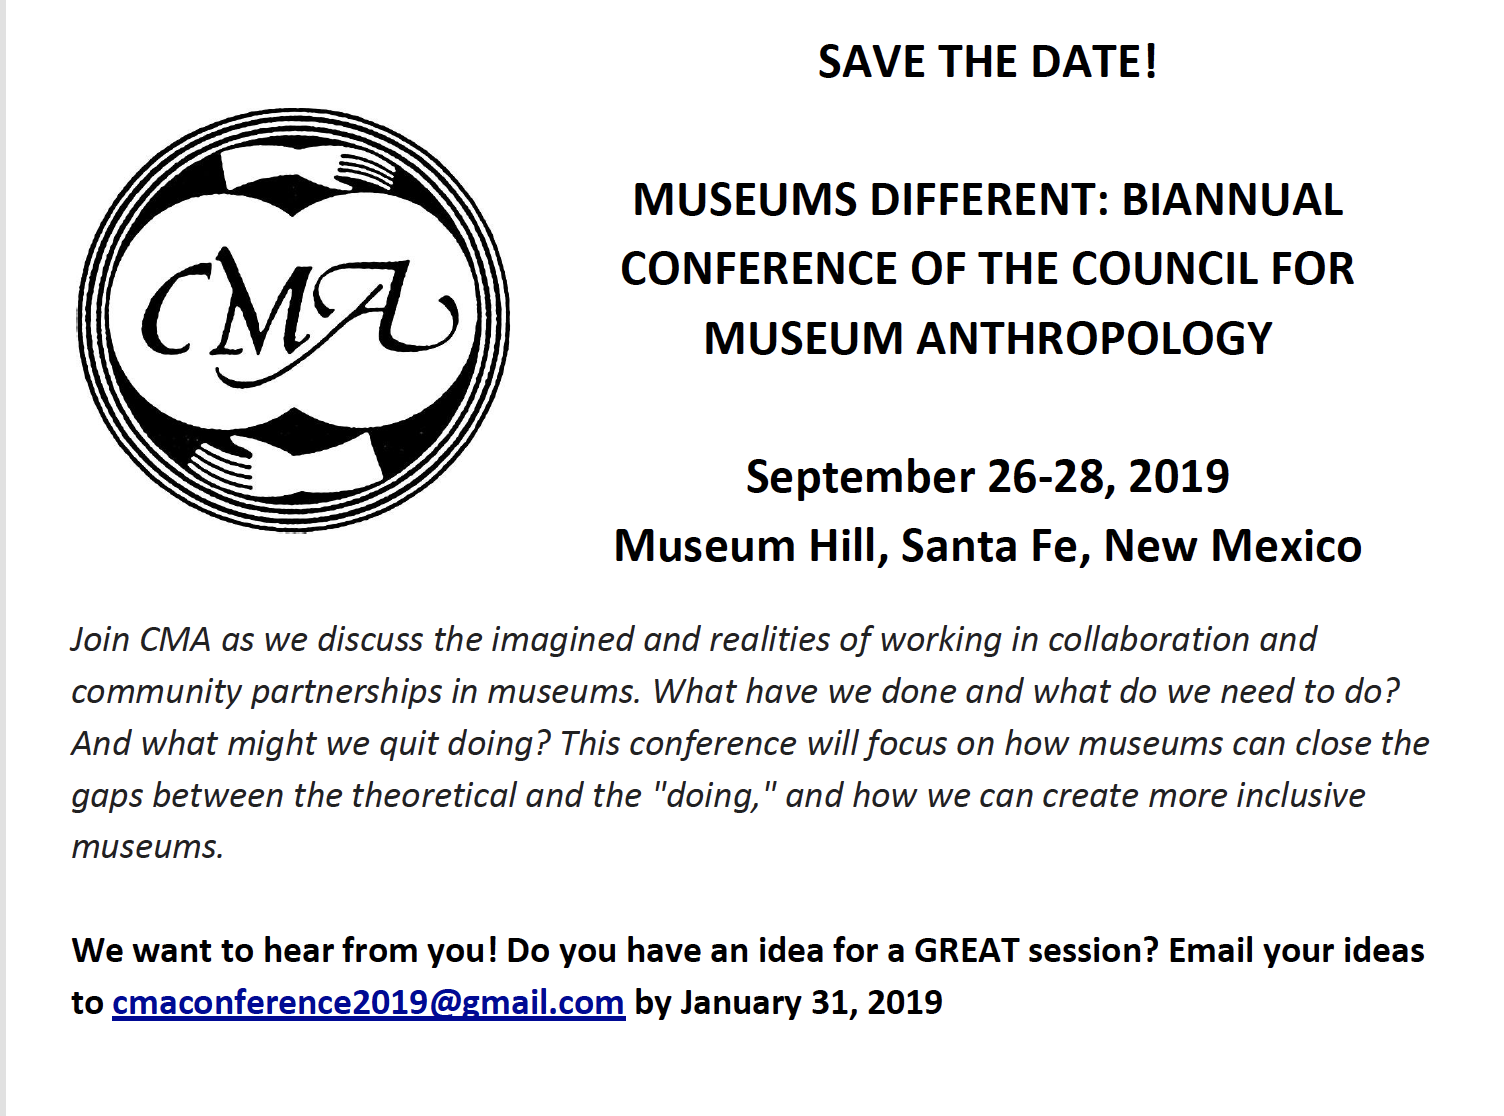 Save the Date & Call for Session Ideas, Updated.png